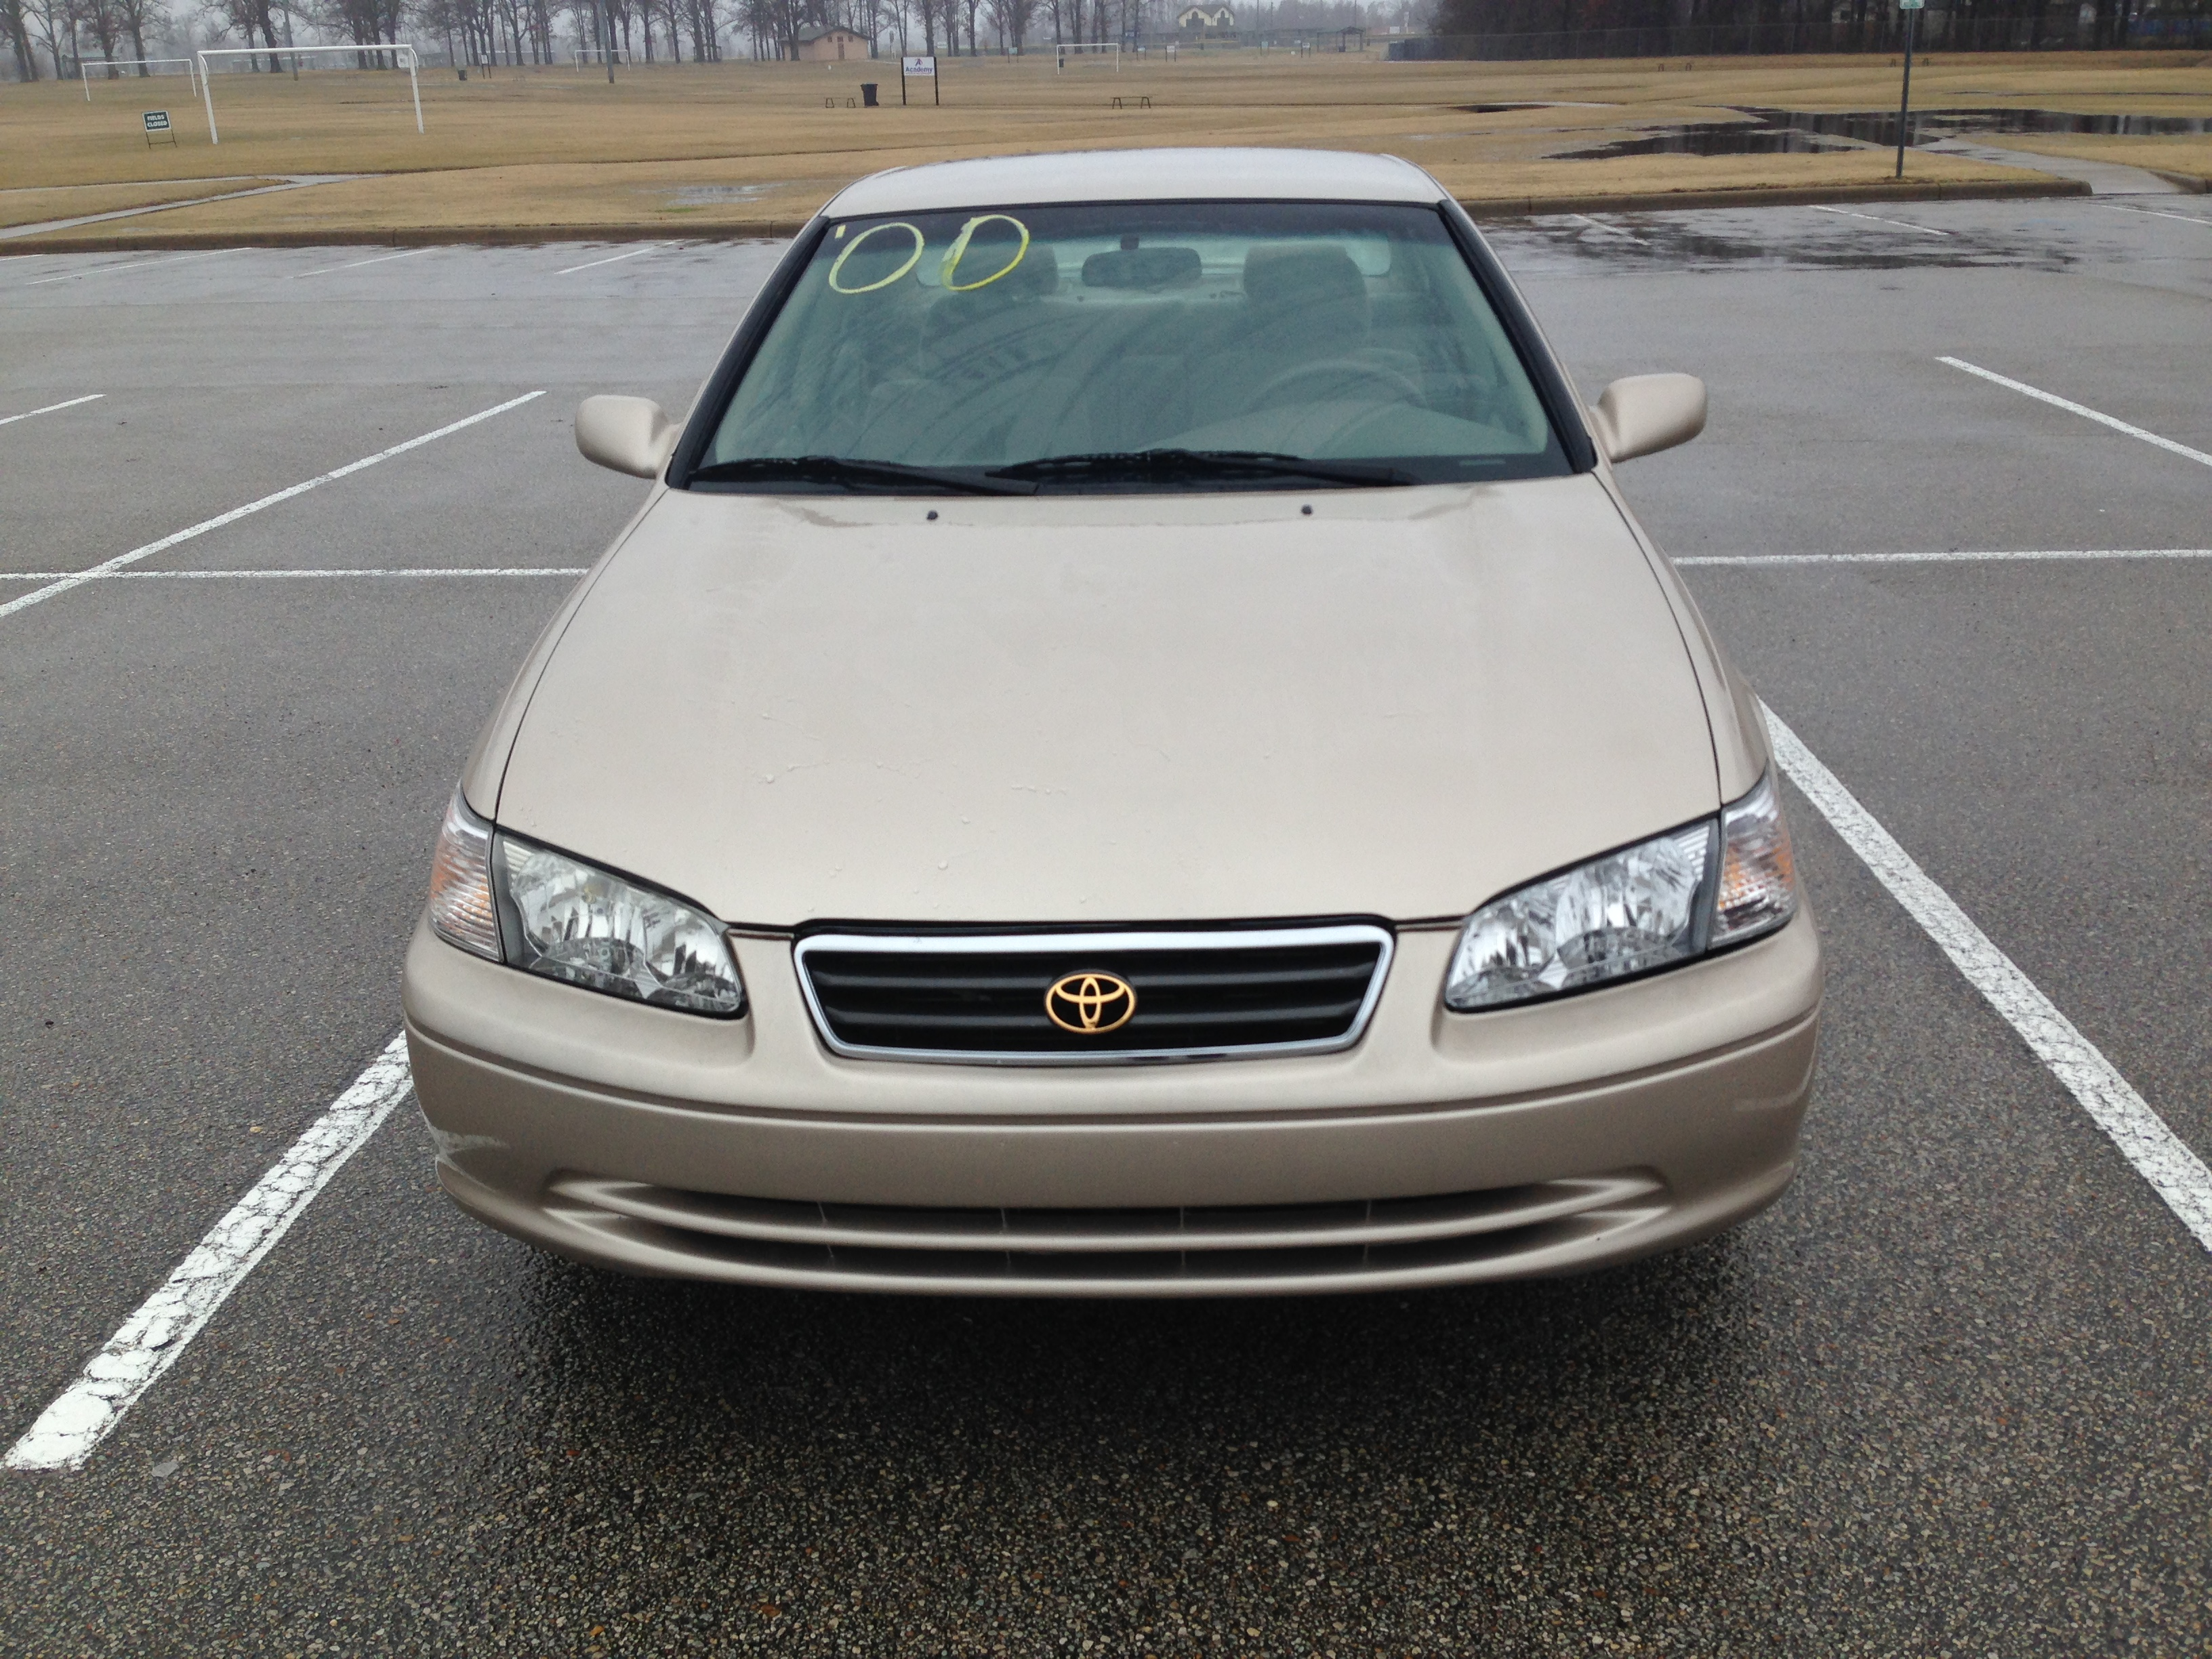 Red White And Blue Auto Sales >> Gold 2000 Toyota Camry (SOLD) | J & L Auto Sales